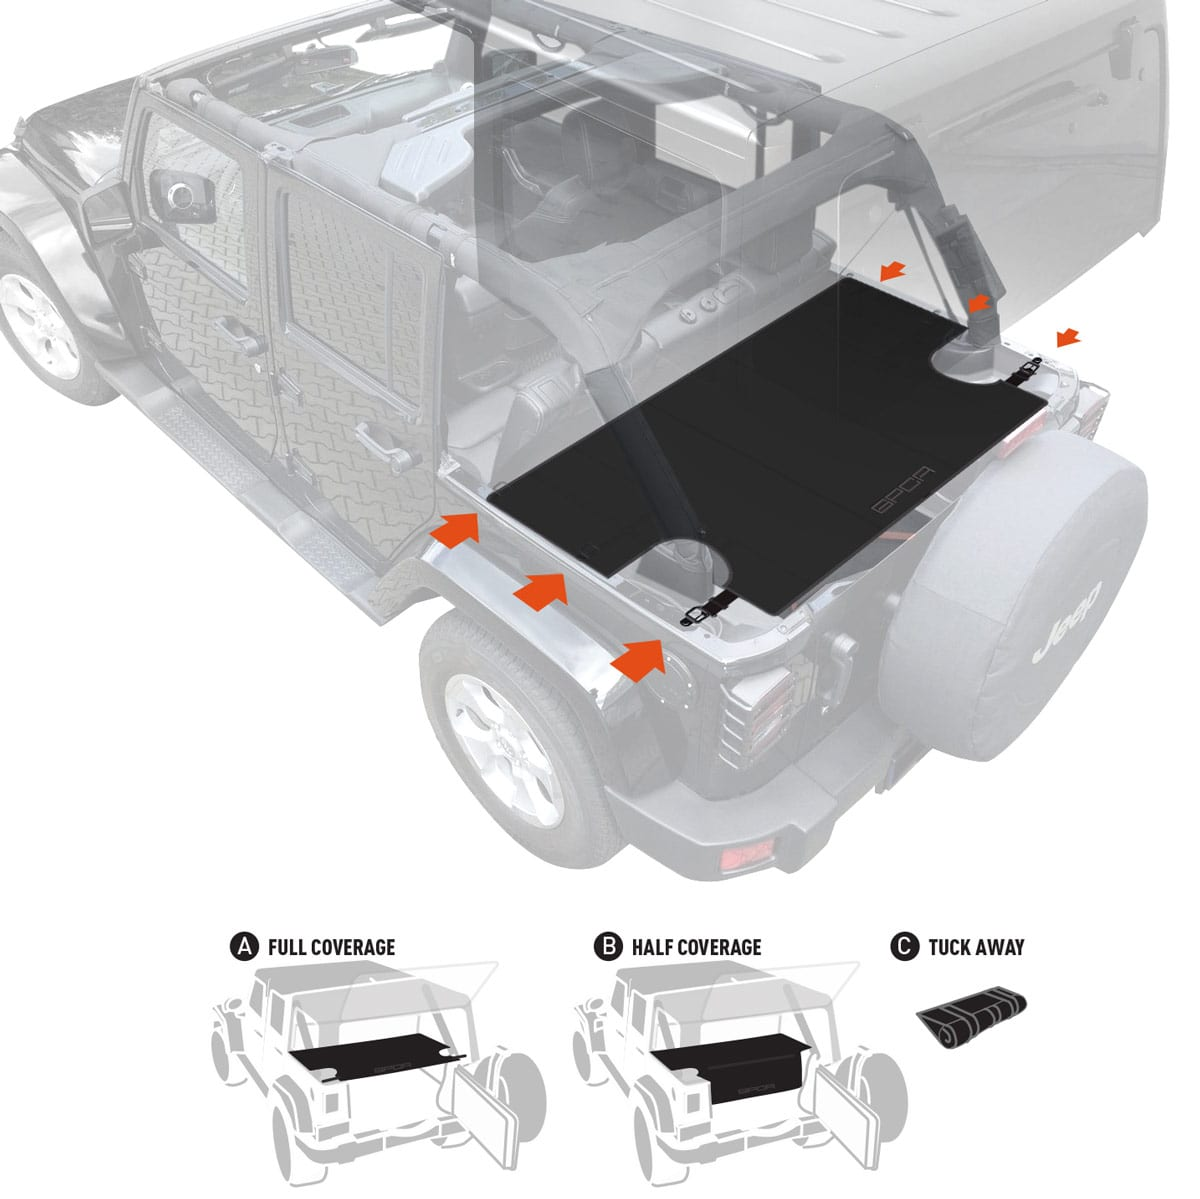 gpca jeep wrangler cargo area freedom pack 4dr cargo cover with 3 configs. Black Bedroom Furniture Sets. Home Design Ideas